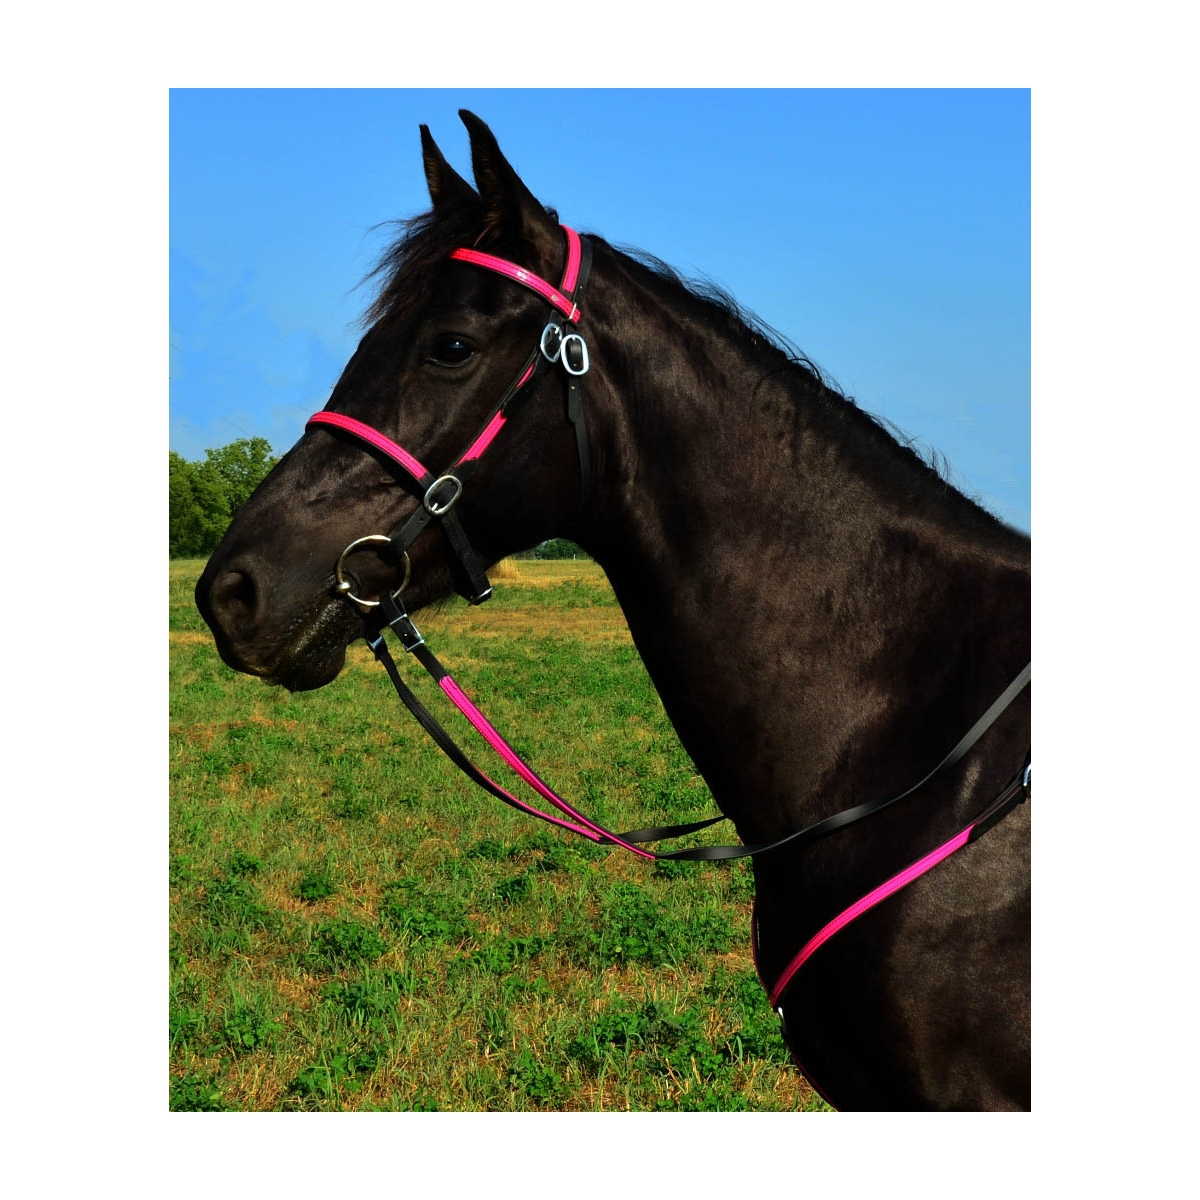 Shop English Bridles For Sale With 2 Color Combination Two Horse Tack